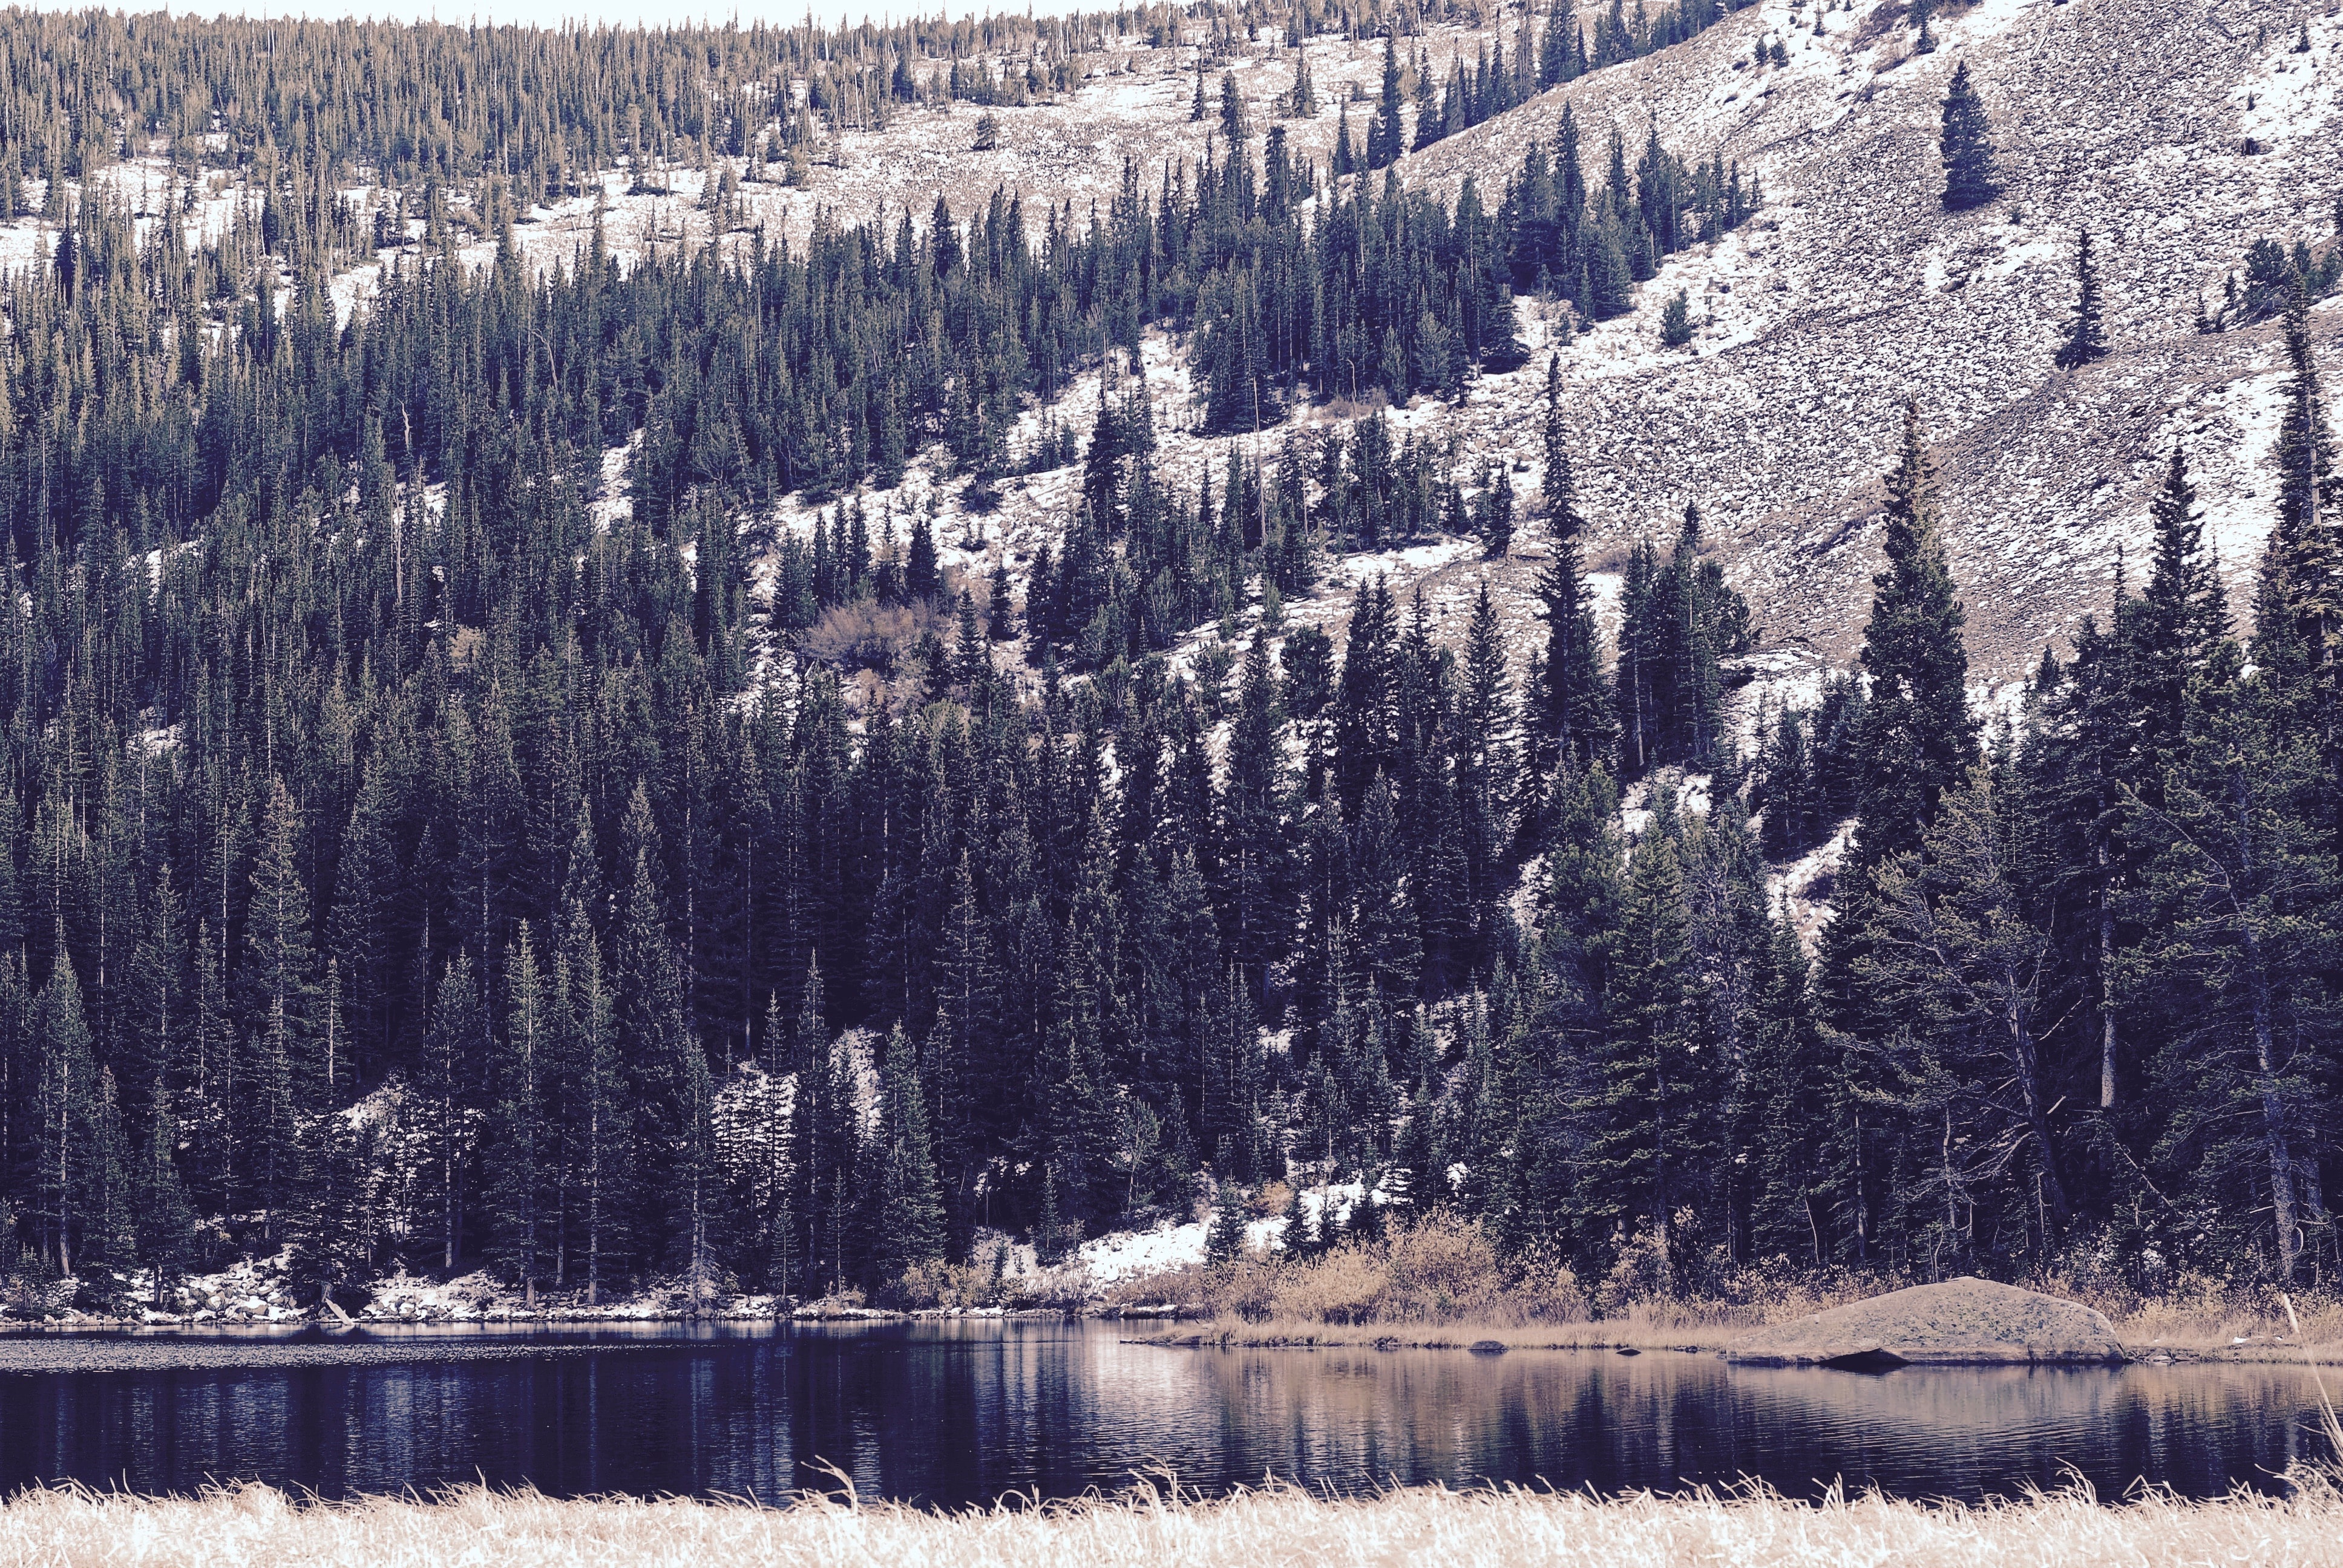 Coniferous trees on a slope near a quiet lake in Eldora